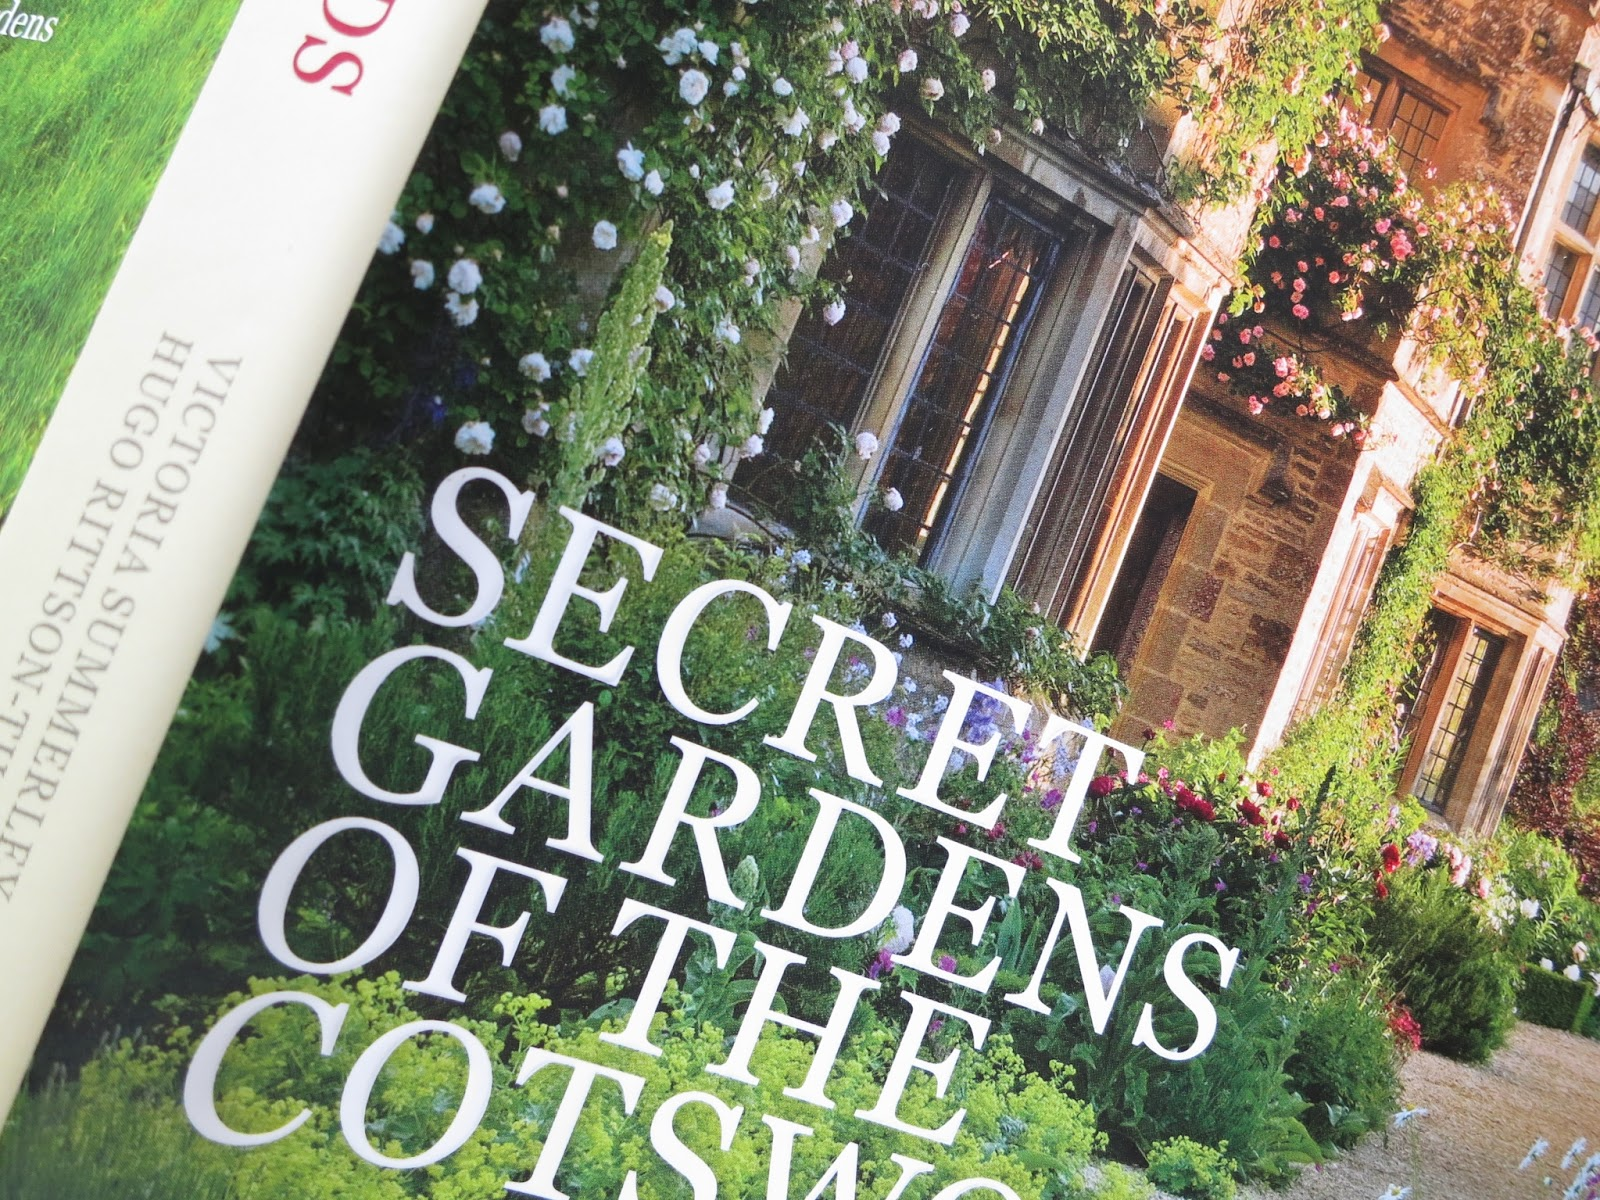 Loose and Leafy photo of cover of Secret Gardens of the Cotswolds